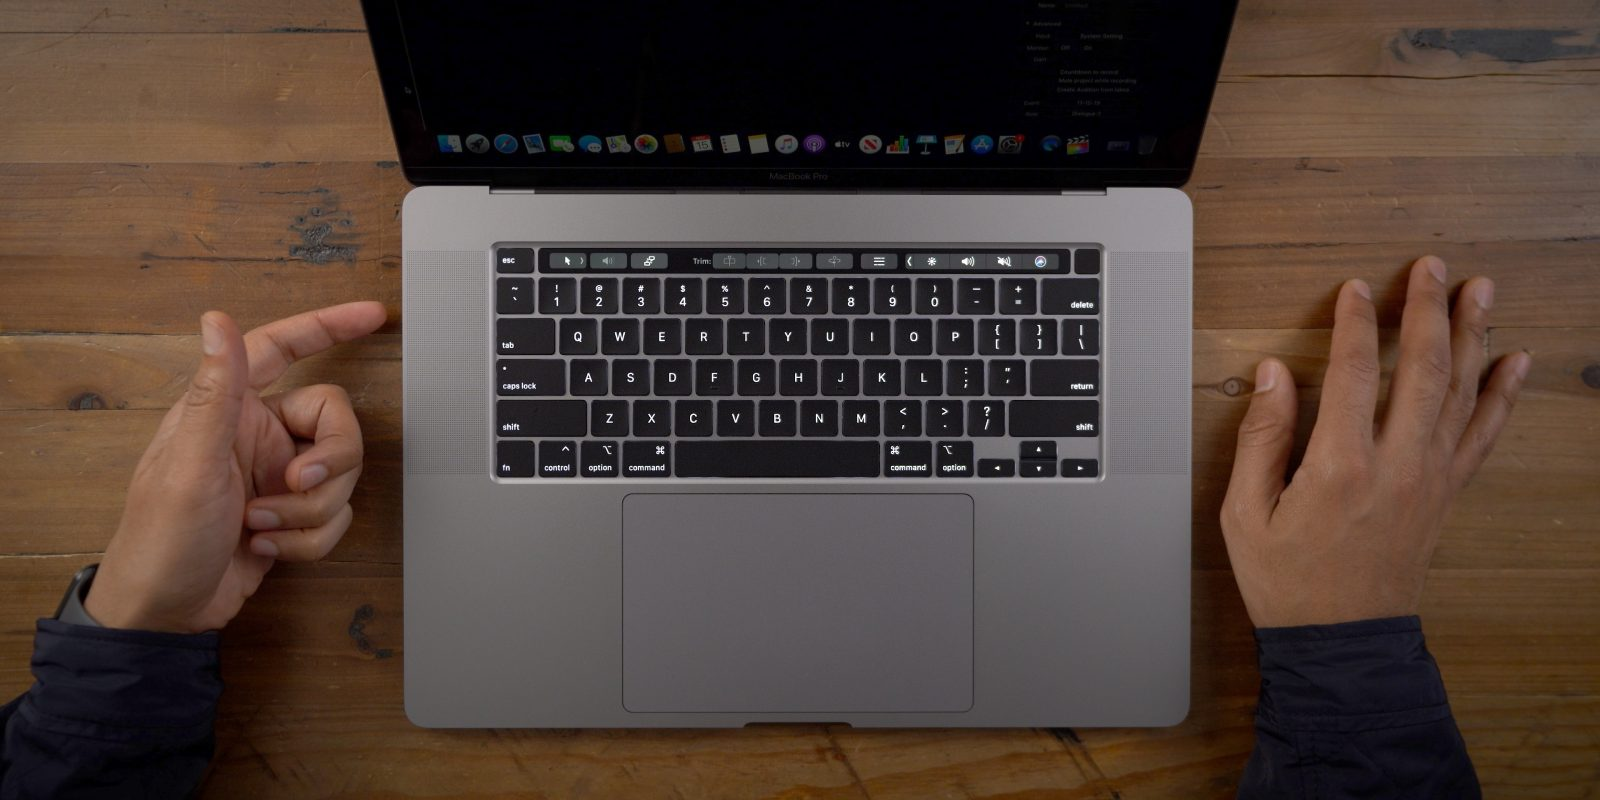 MacBook Pro: Screen Size, Features, Pricing, Specs, etc